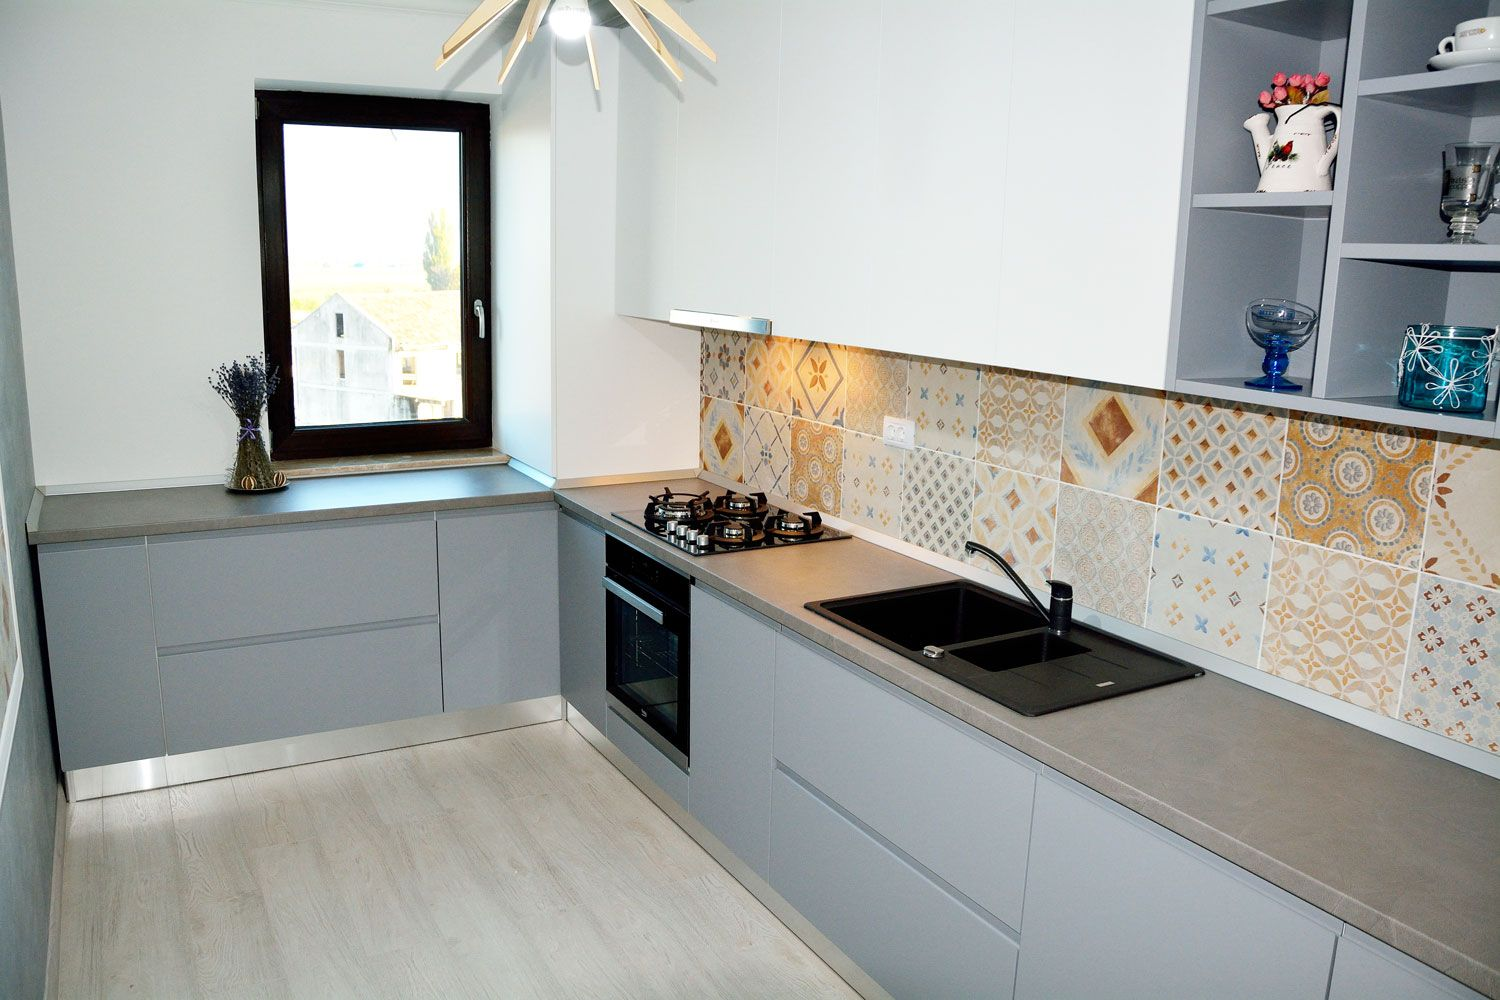 Best Kitchen Image By Mobila Bacau Yulmob On Bucatarie Mdf Gri 400 x 300